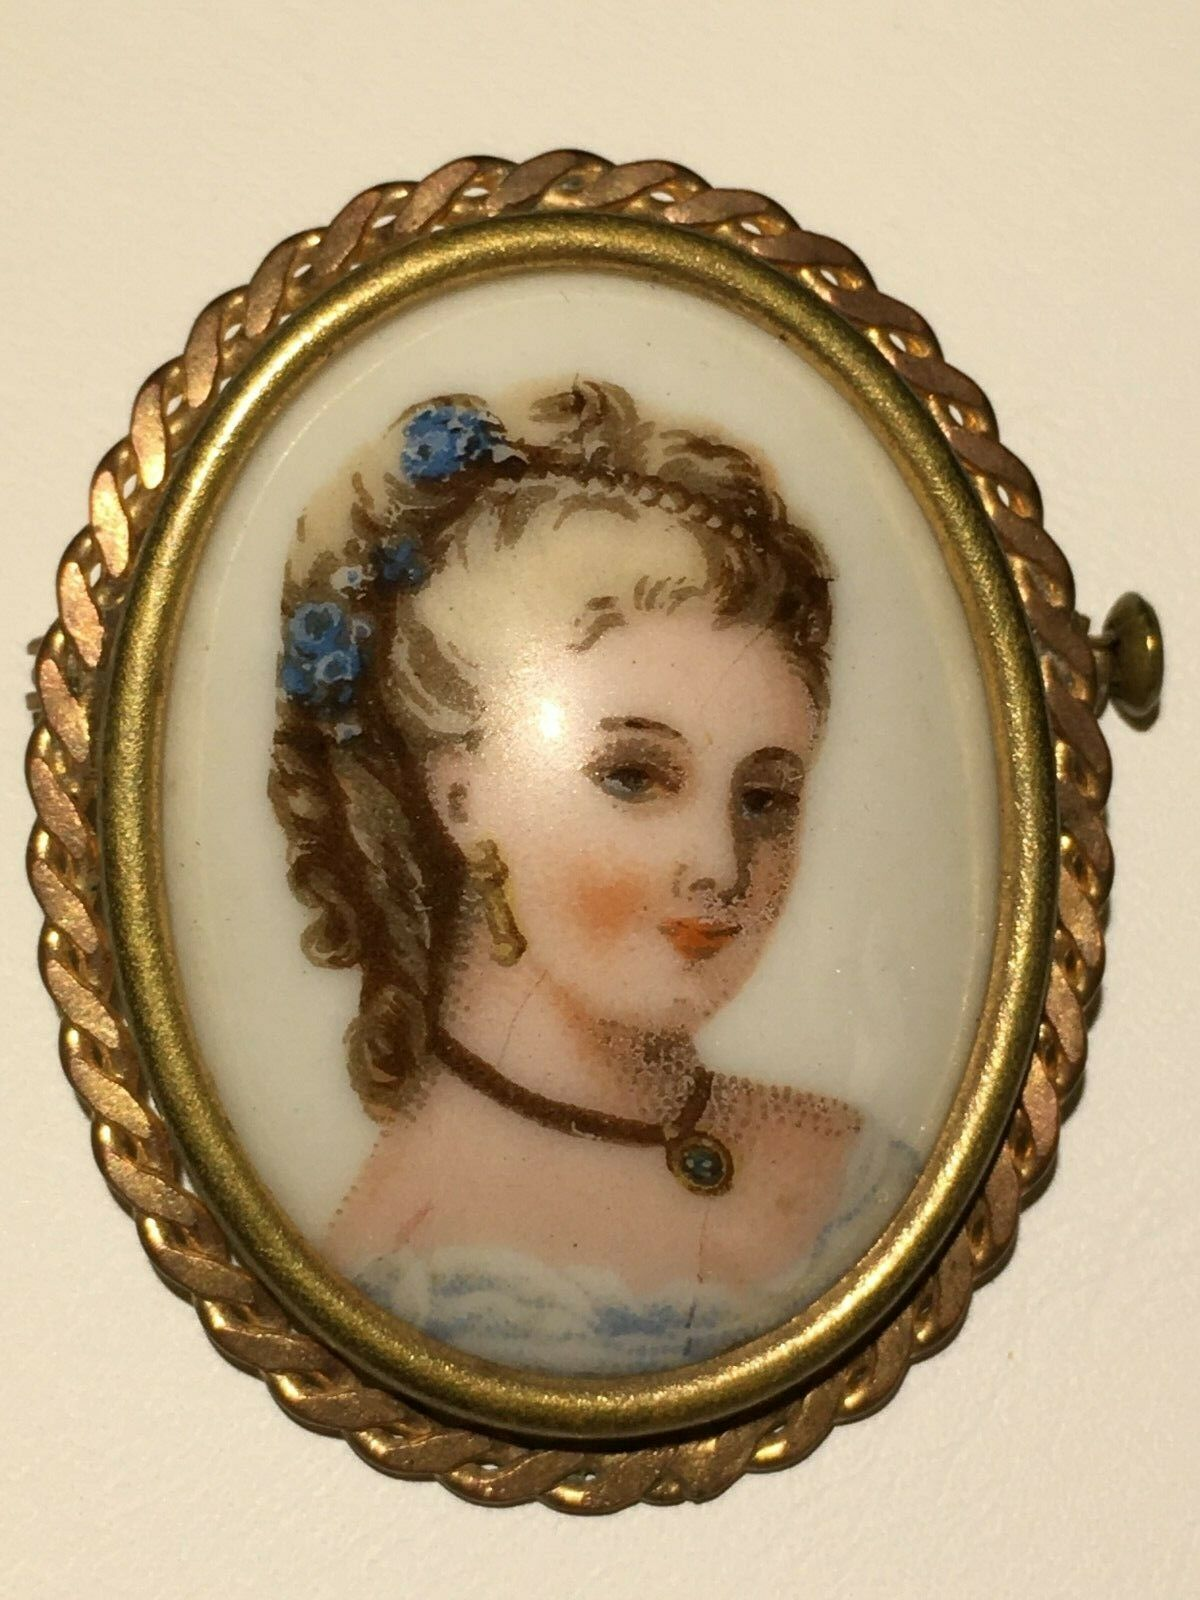 1890 Limoges Porcelain Hand painted Cameo Brooch